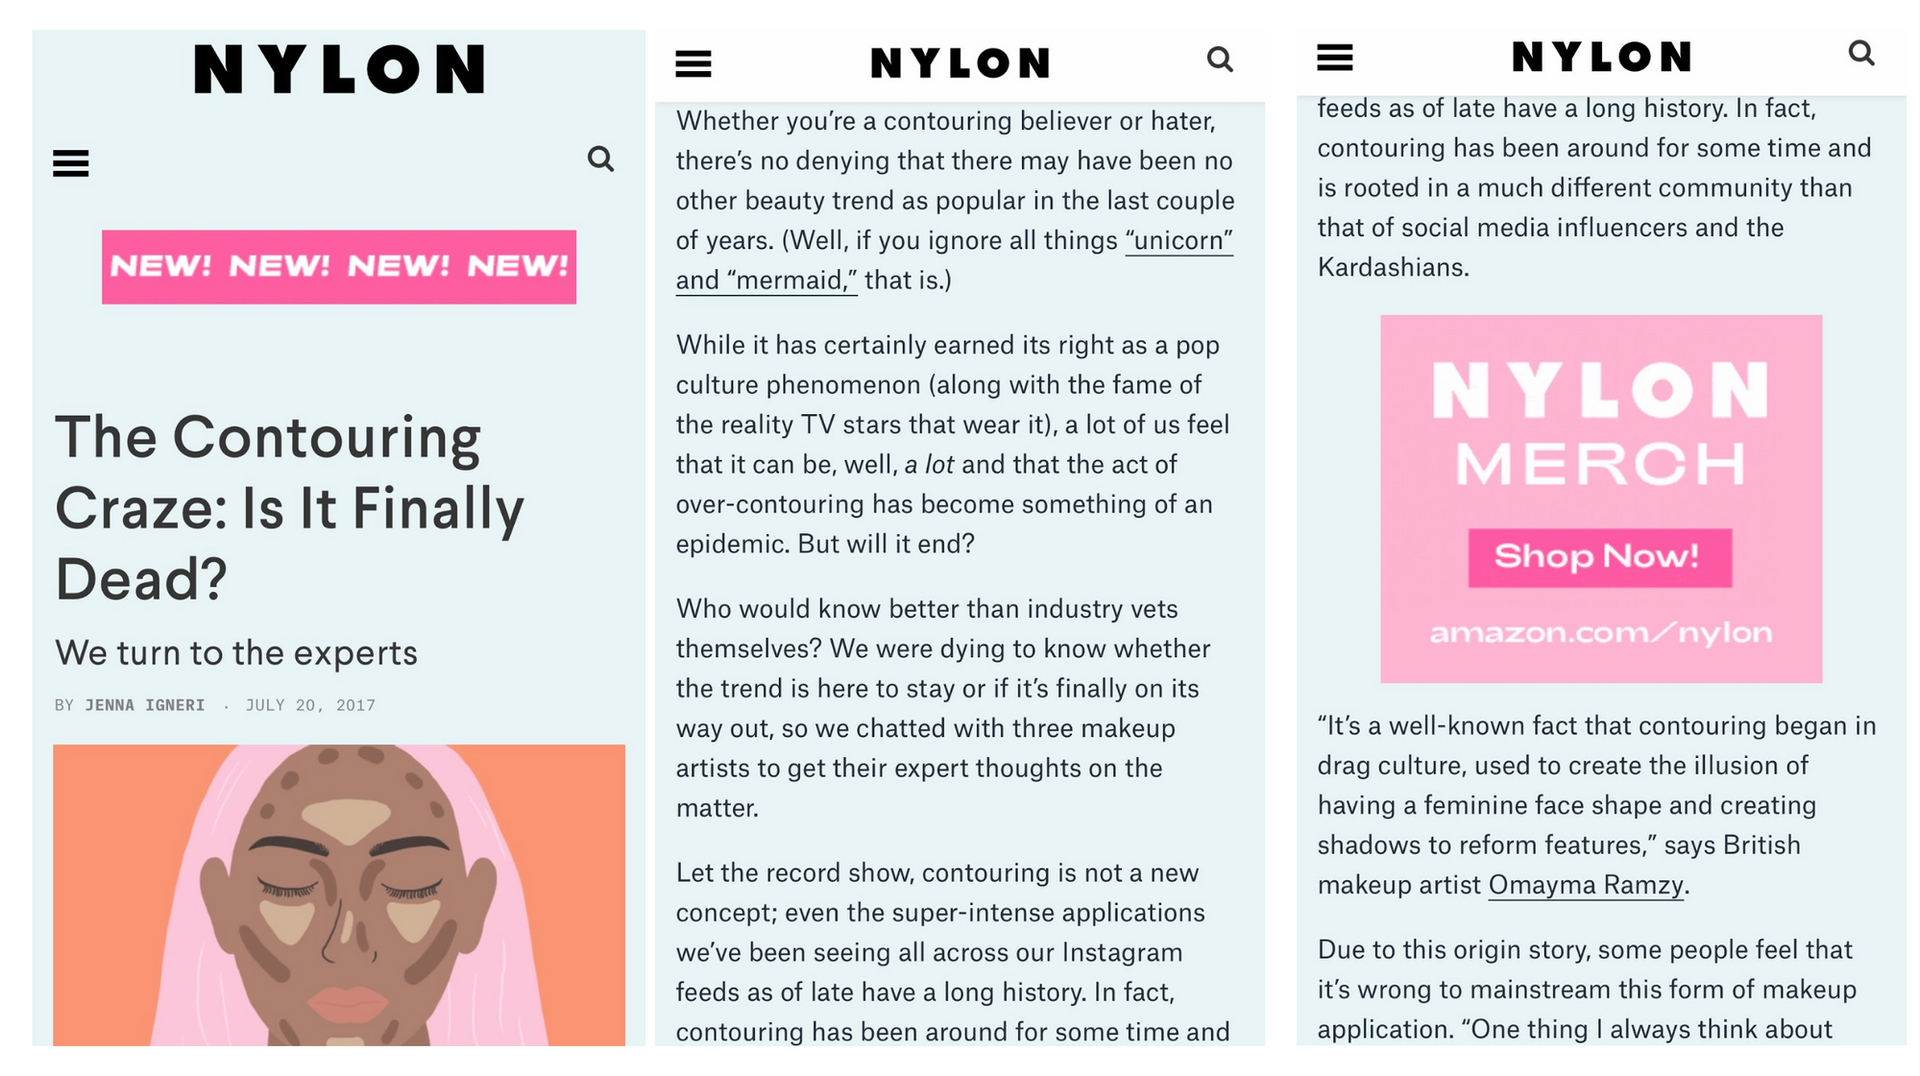 NYLON The Contouring Craze: Is it Finally Dead? Omayma Ramzy